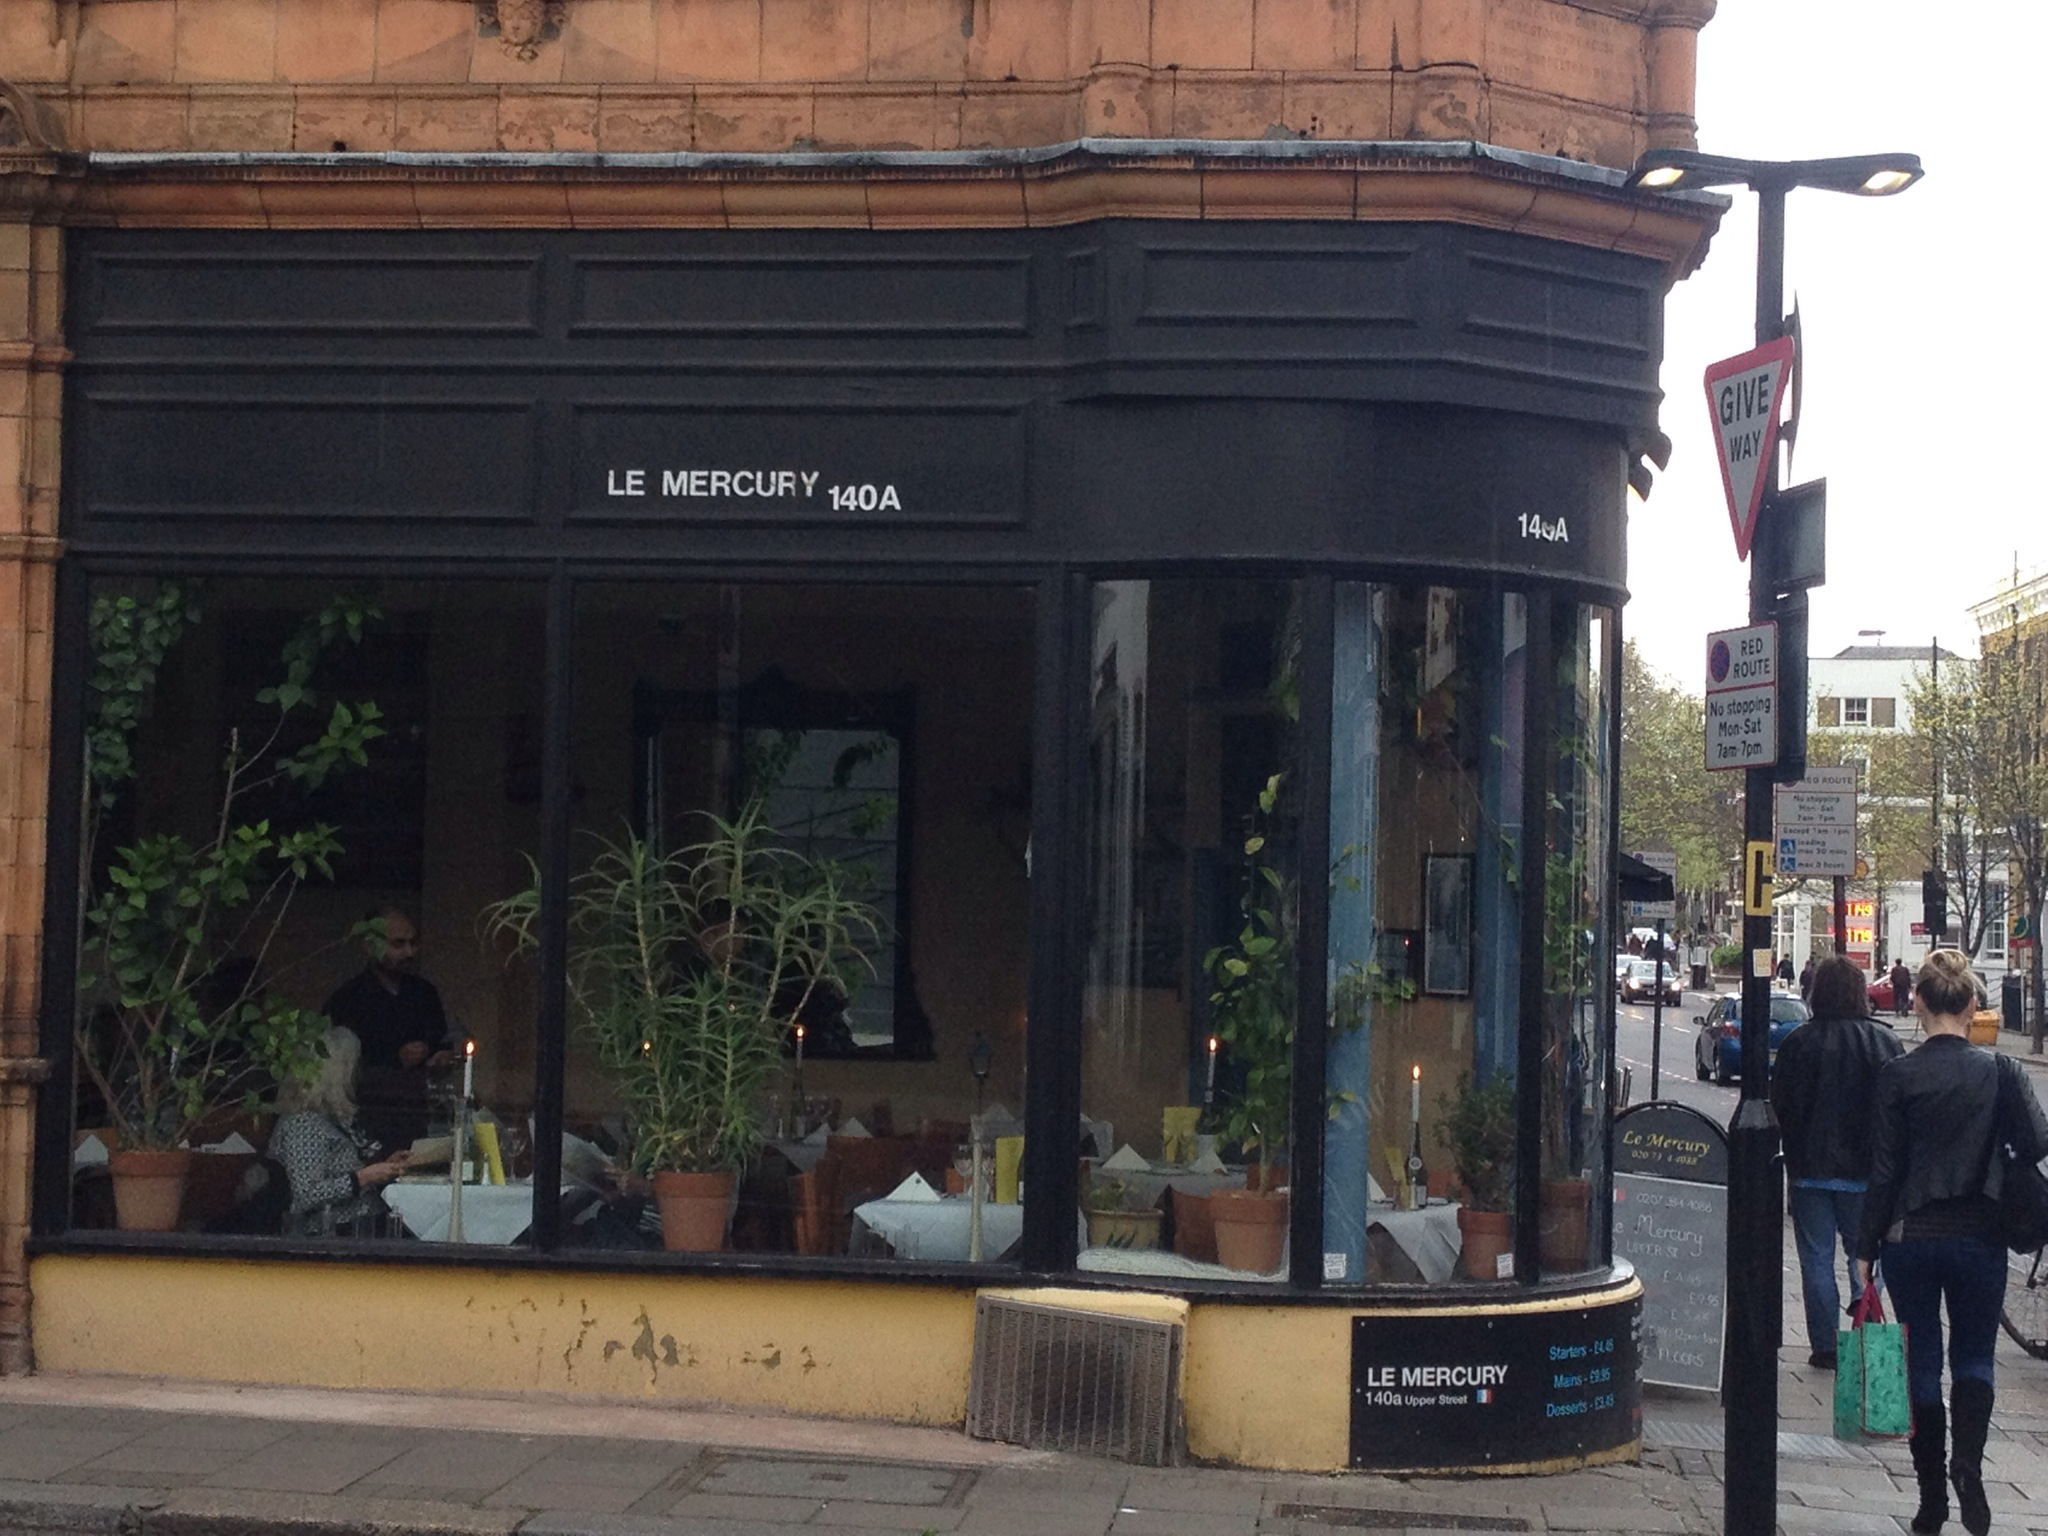 Le Mercury - Upper Street, Islington